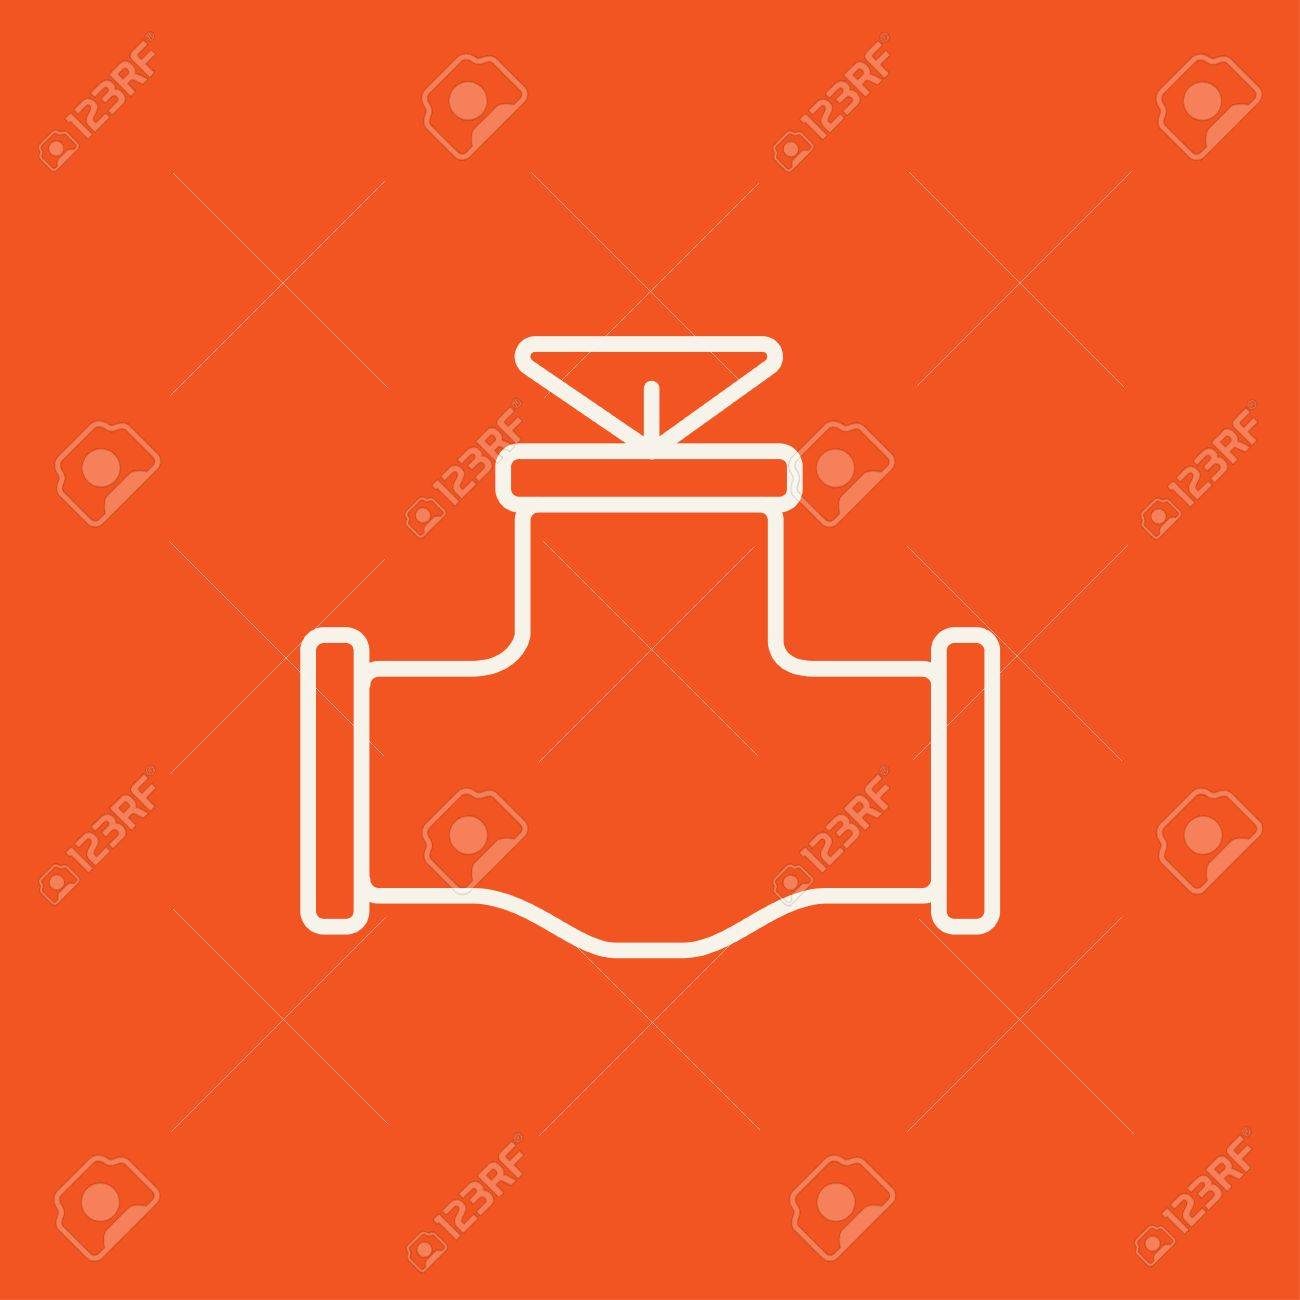 Gas Valve Symbol Images Meaning Of This Symbol